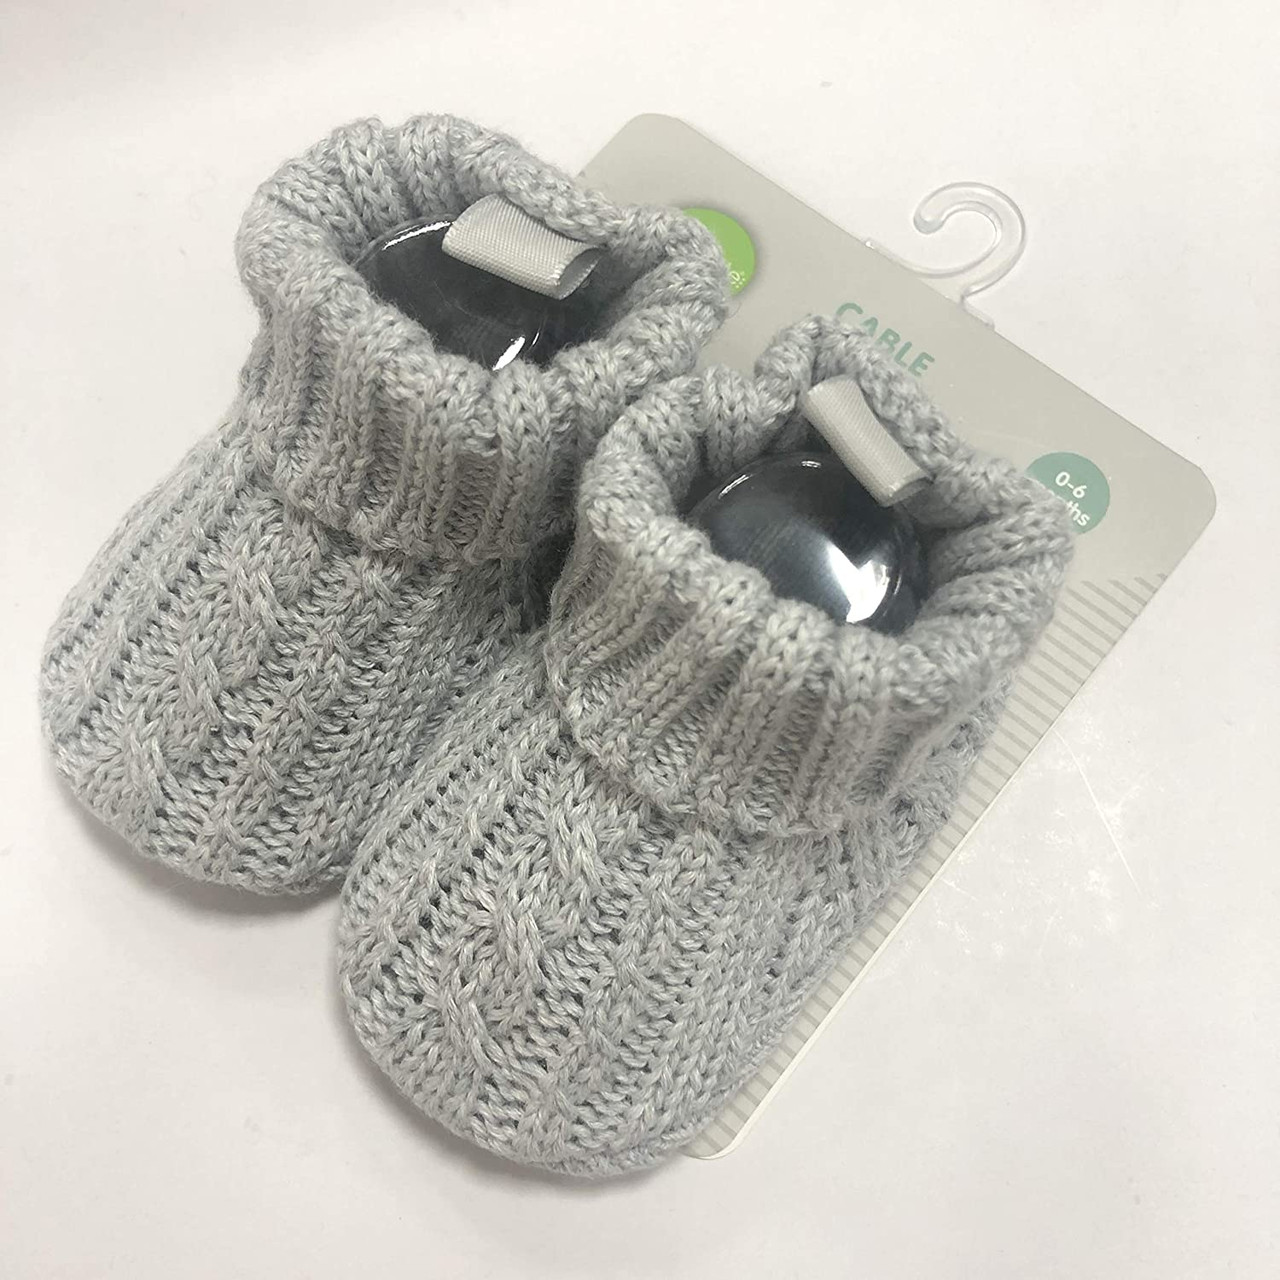 Playette Cable Knitted Bootie 0-6 months at Baby Barn Discounts Keep those tiny toes toasty with these Cable Knit Booties. Super soft and gentle on little feet. In grey or white knit, they match every outfit and are perfect for even the coldest outings.